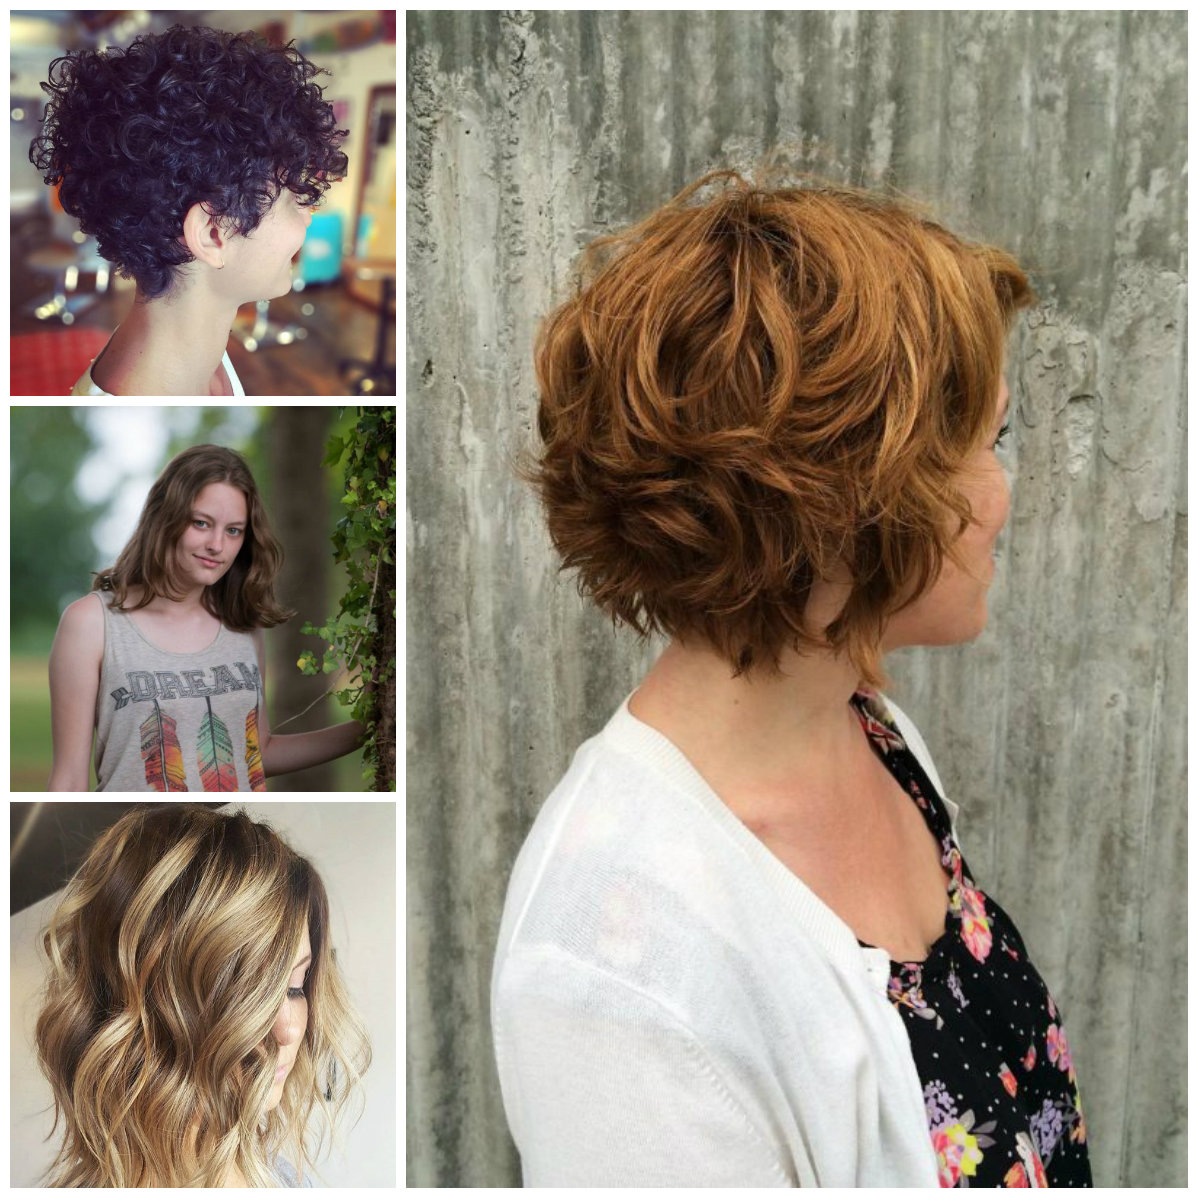 Stylish Short Wavy Hairstyle for 2017 | 2017 Haircuts, Hairstyles ...